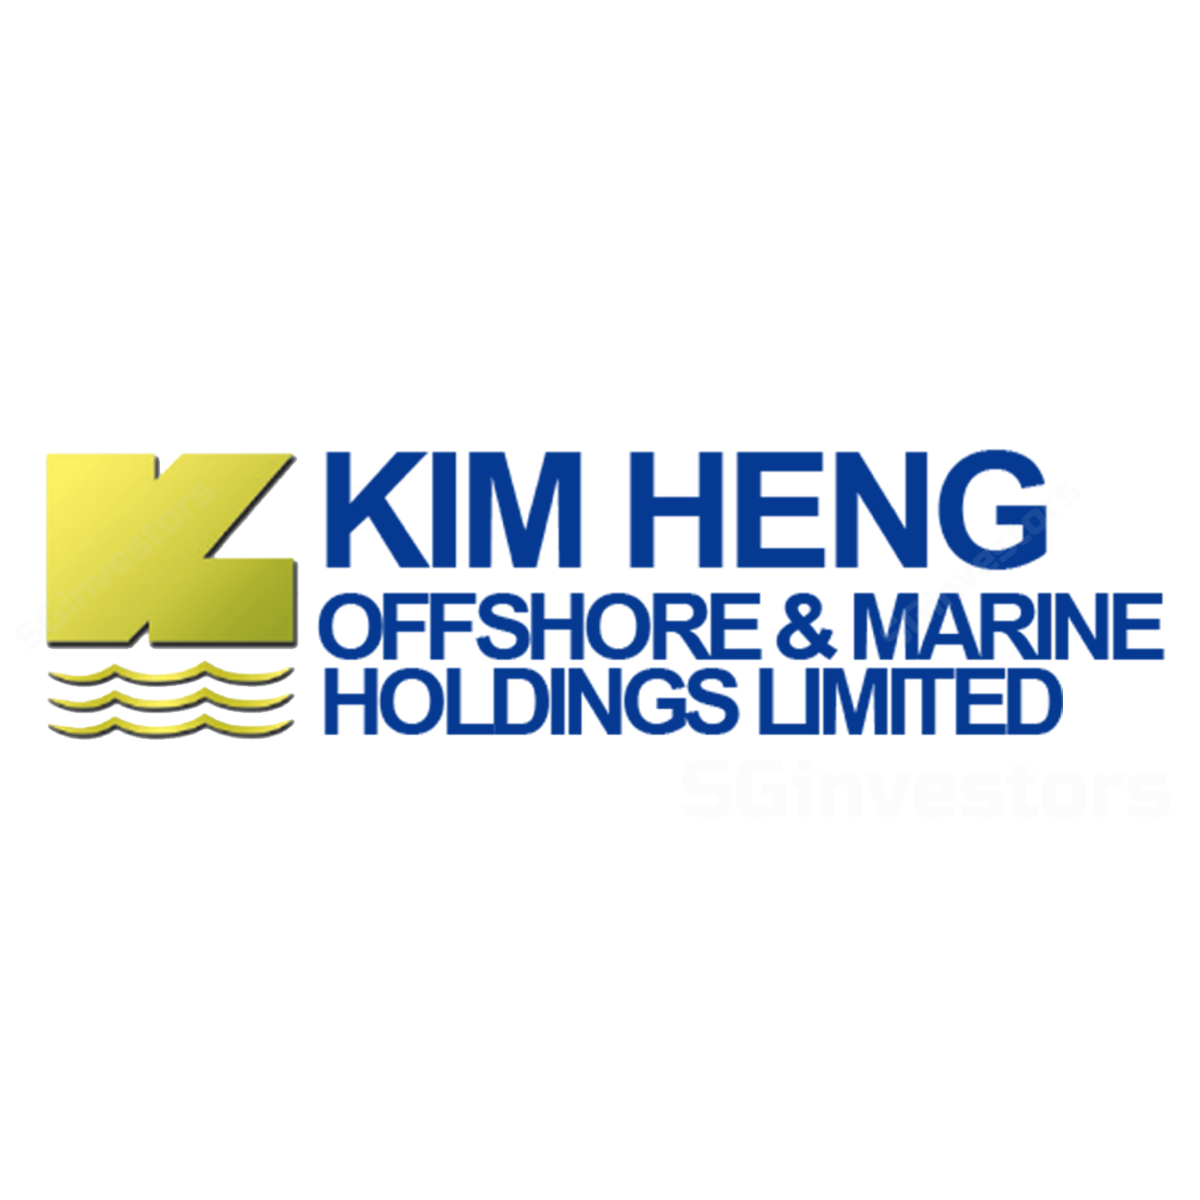 Kim Heng Offshore & Marine - OCBC Investment 2017-04-27: In The Black